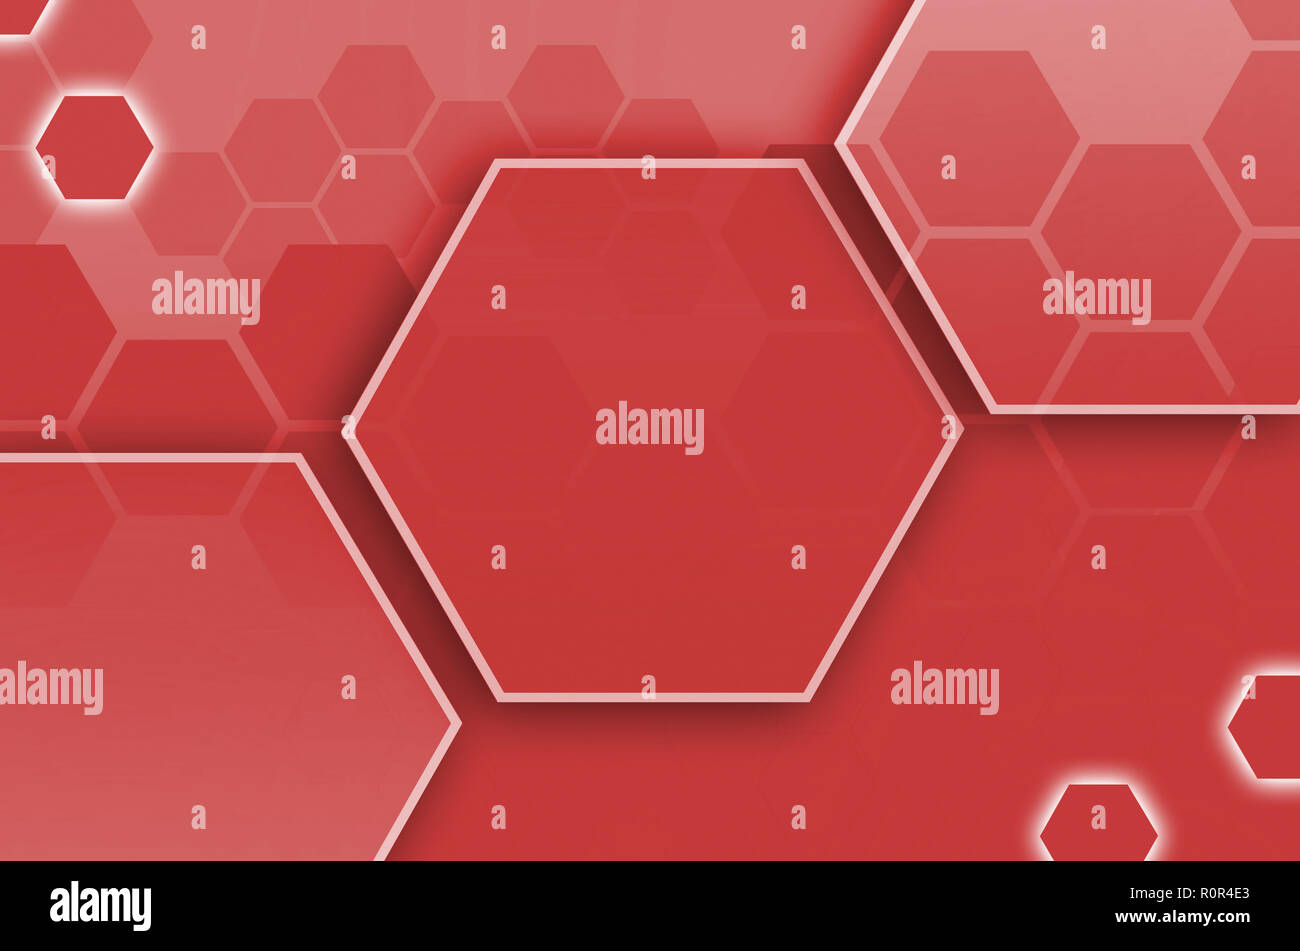 Abstract technological background consisting of a set of hexagons and other geometric shapes in red color - Stock Image